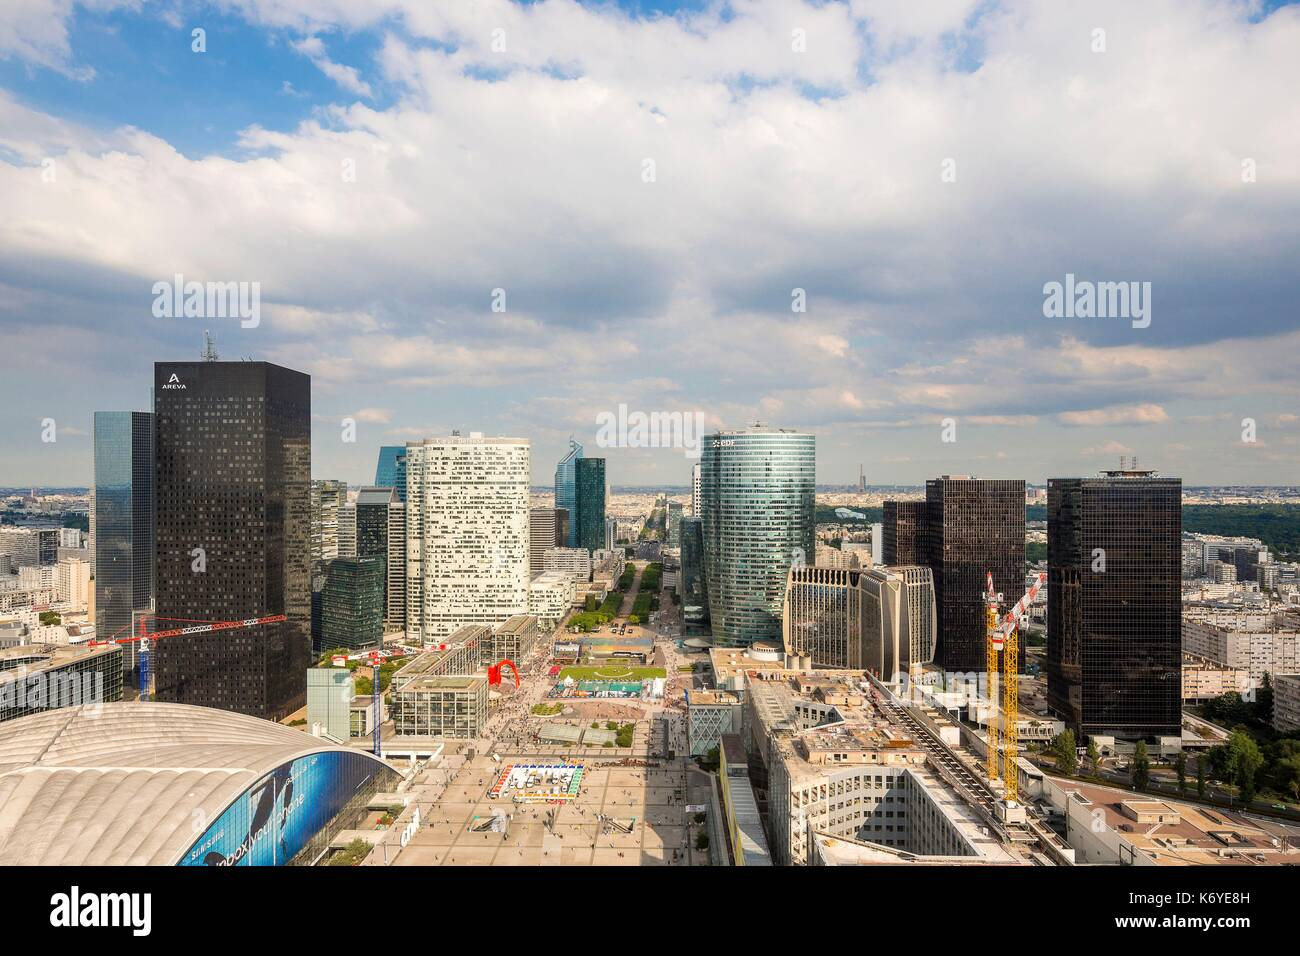 Toit Terrasse Grande Arche View From The Top Of La Grande Arche Photos View From The Top Of